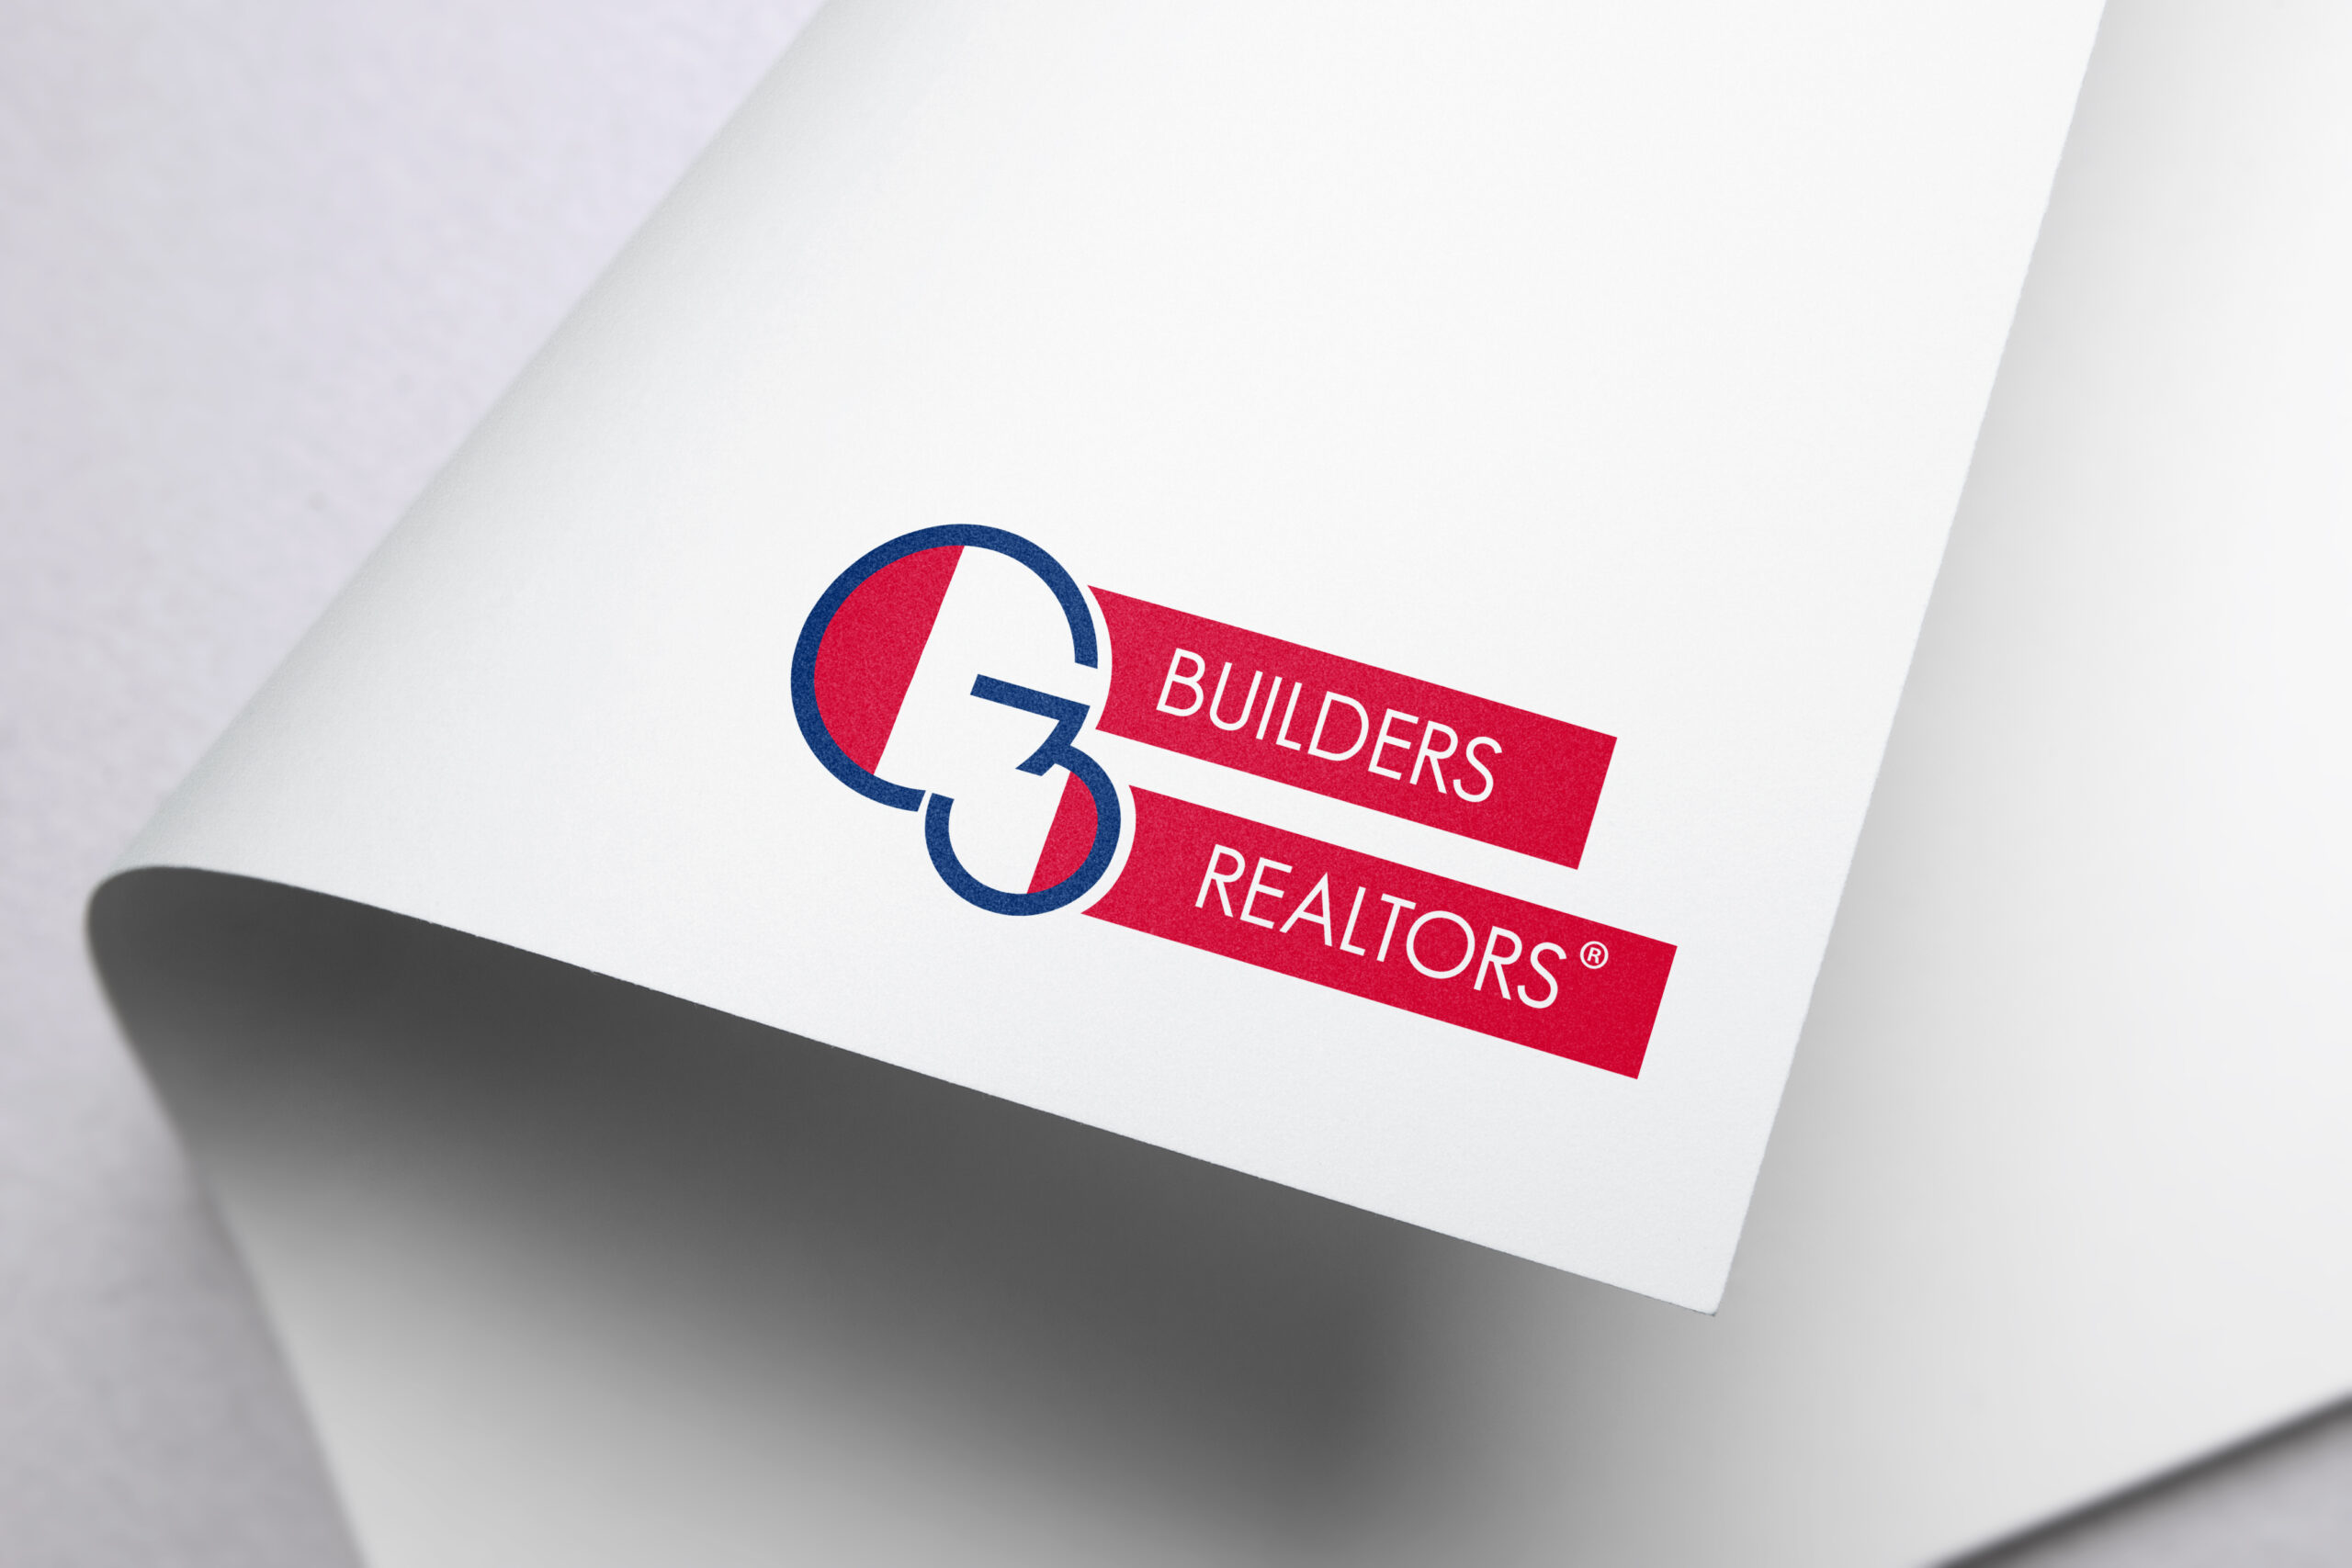 custom logo design for G3 Builders and Realtors by LE Designs, Lindsey Elizabeth Designs, in Lake Country/Waukesha/Brookfield/Milwaukee, graphic design project, graphic designer